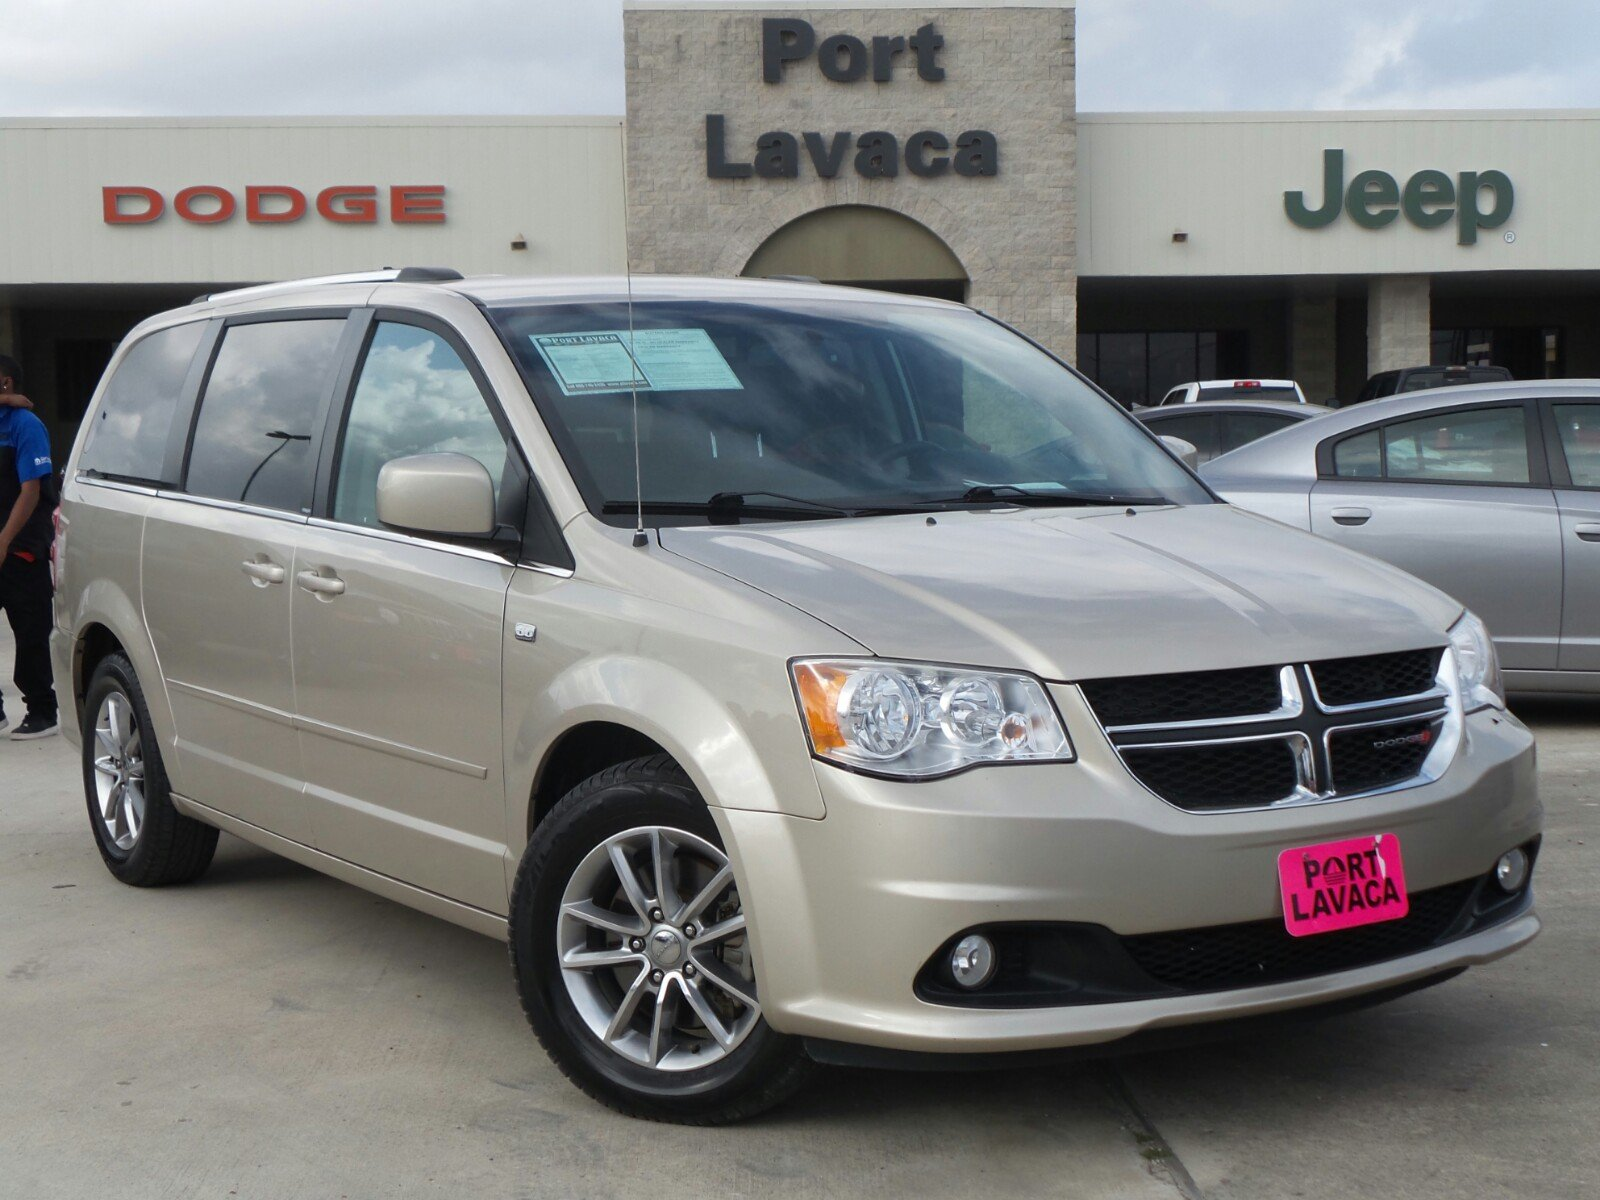 pre owned 2014 dodge grand caravan sxt 30th anniversary mini van passenger in port lavaca. Black Bedroom Furniture Sets. Home Design Ideas